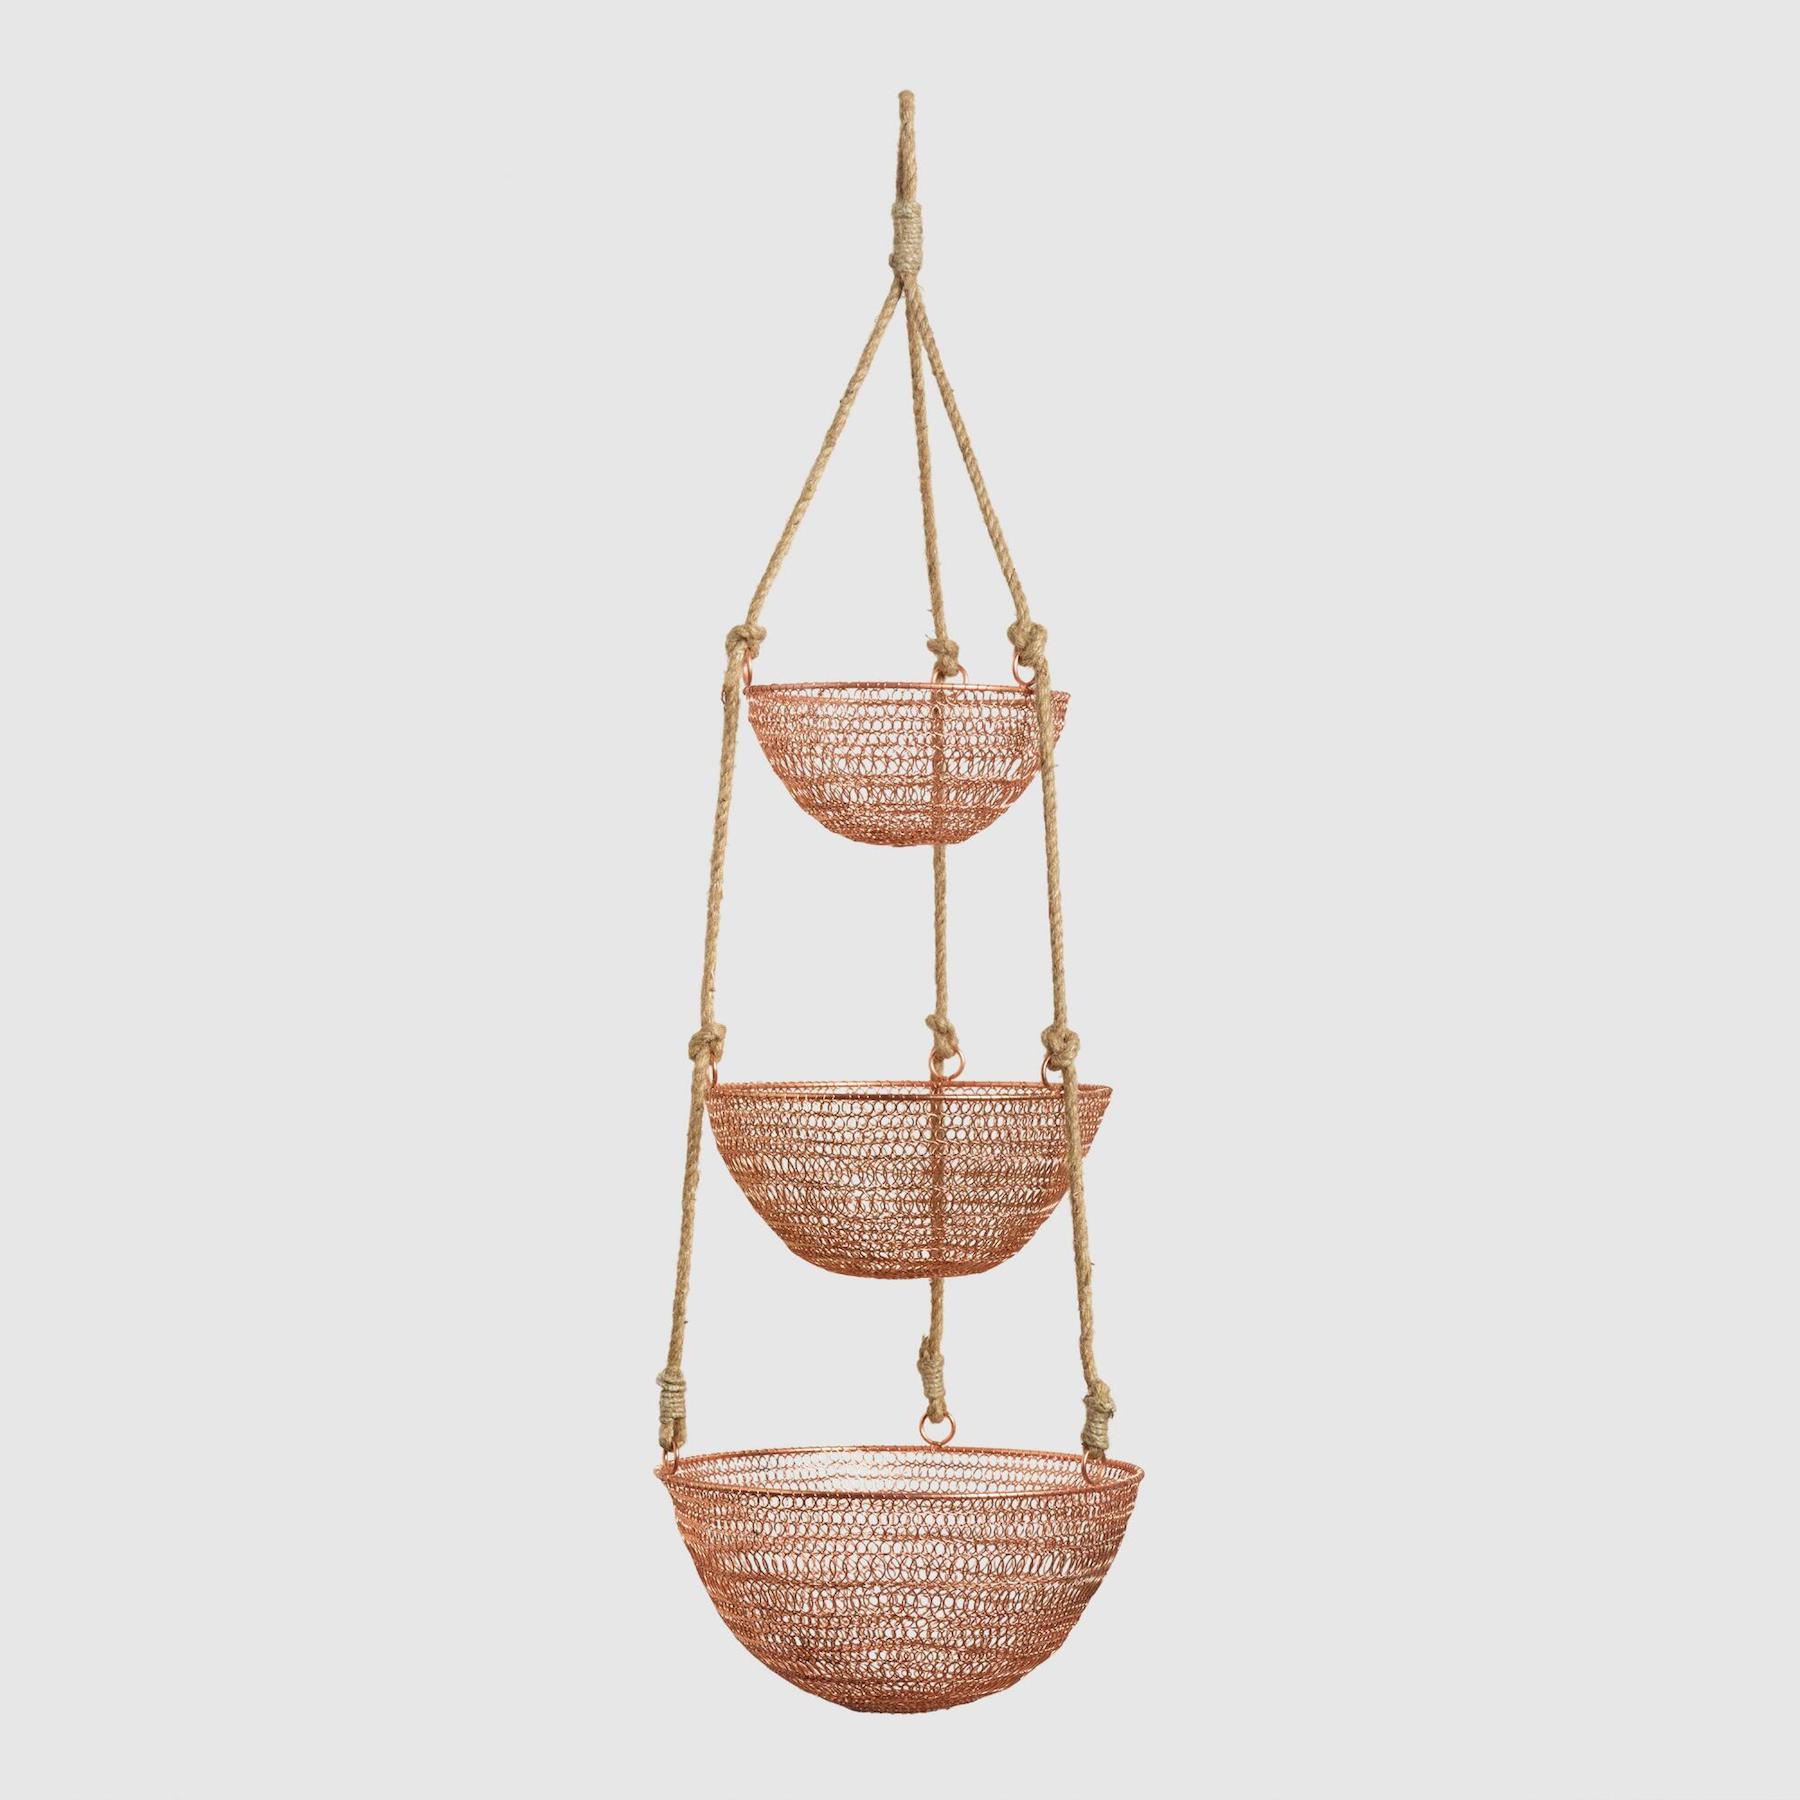 Copper and Rope Baskets